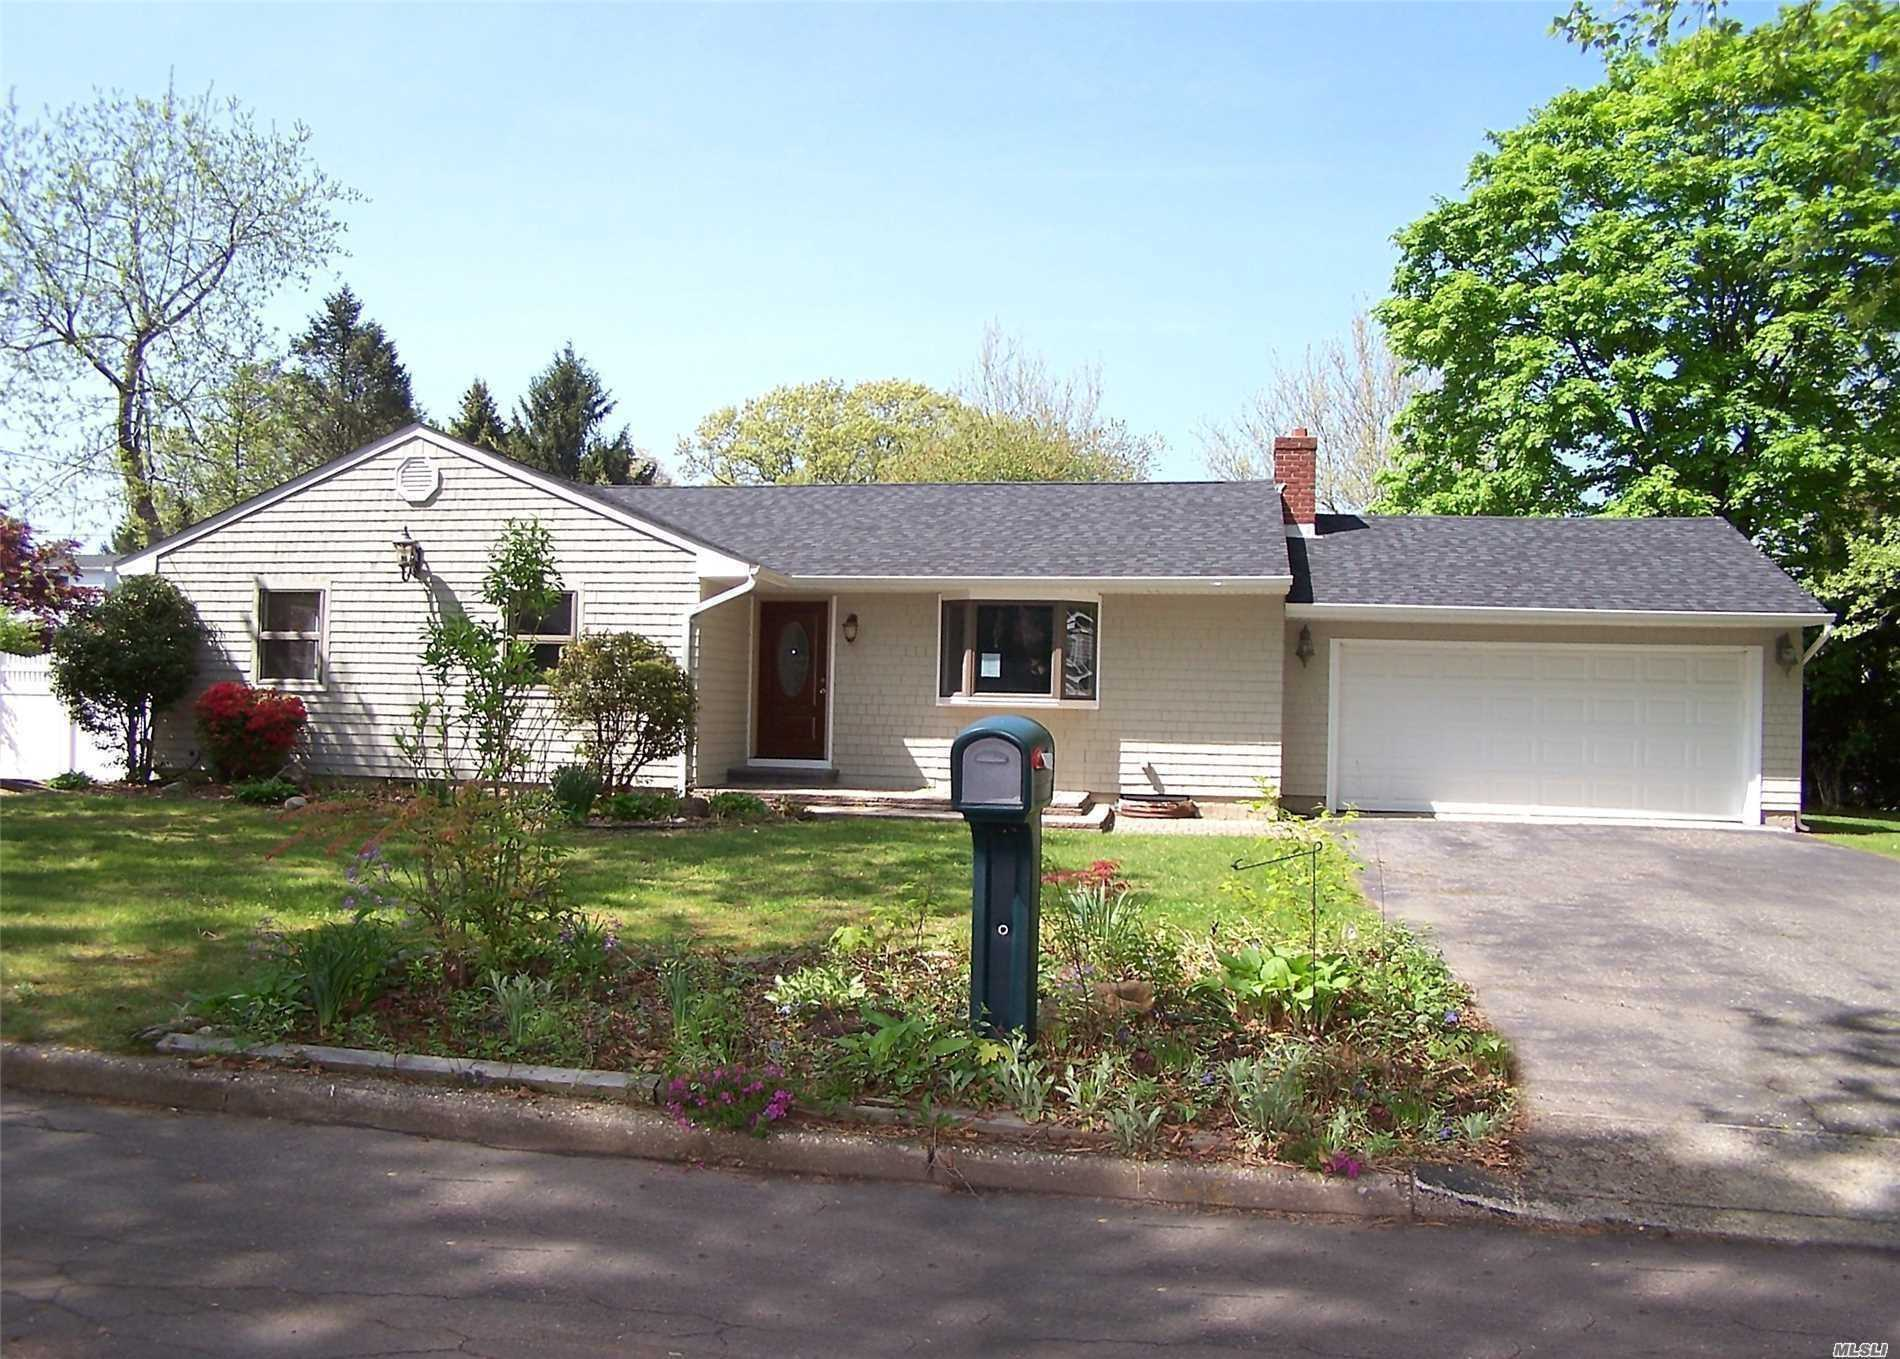 Must See This 3 Bedroom, 2 Bath Updated Ranch On A Quiet Cul-De-Sac. Home Is Open And Airy. There Is A New Roof, And Fresh Paint Throughout.